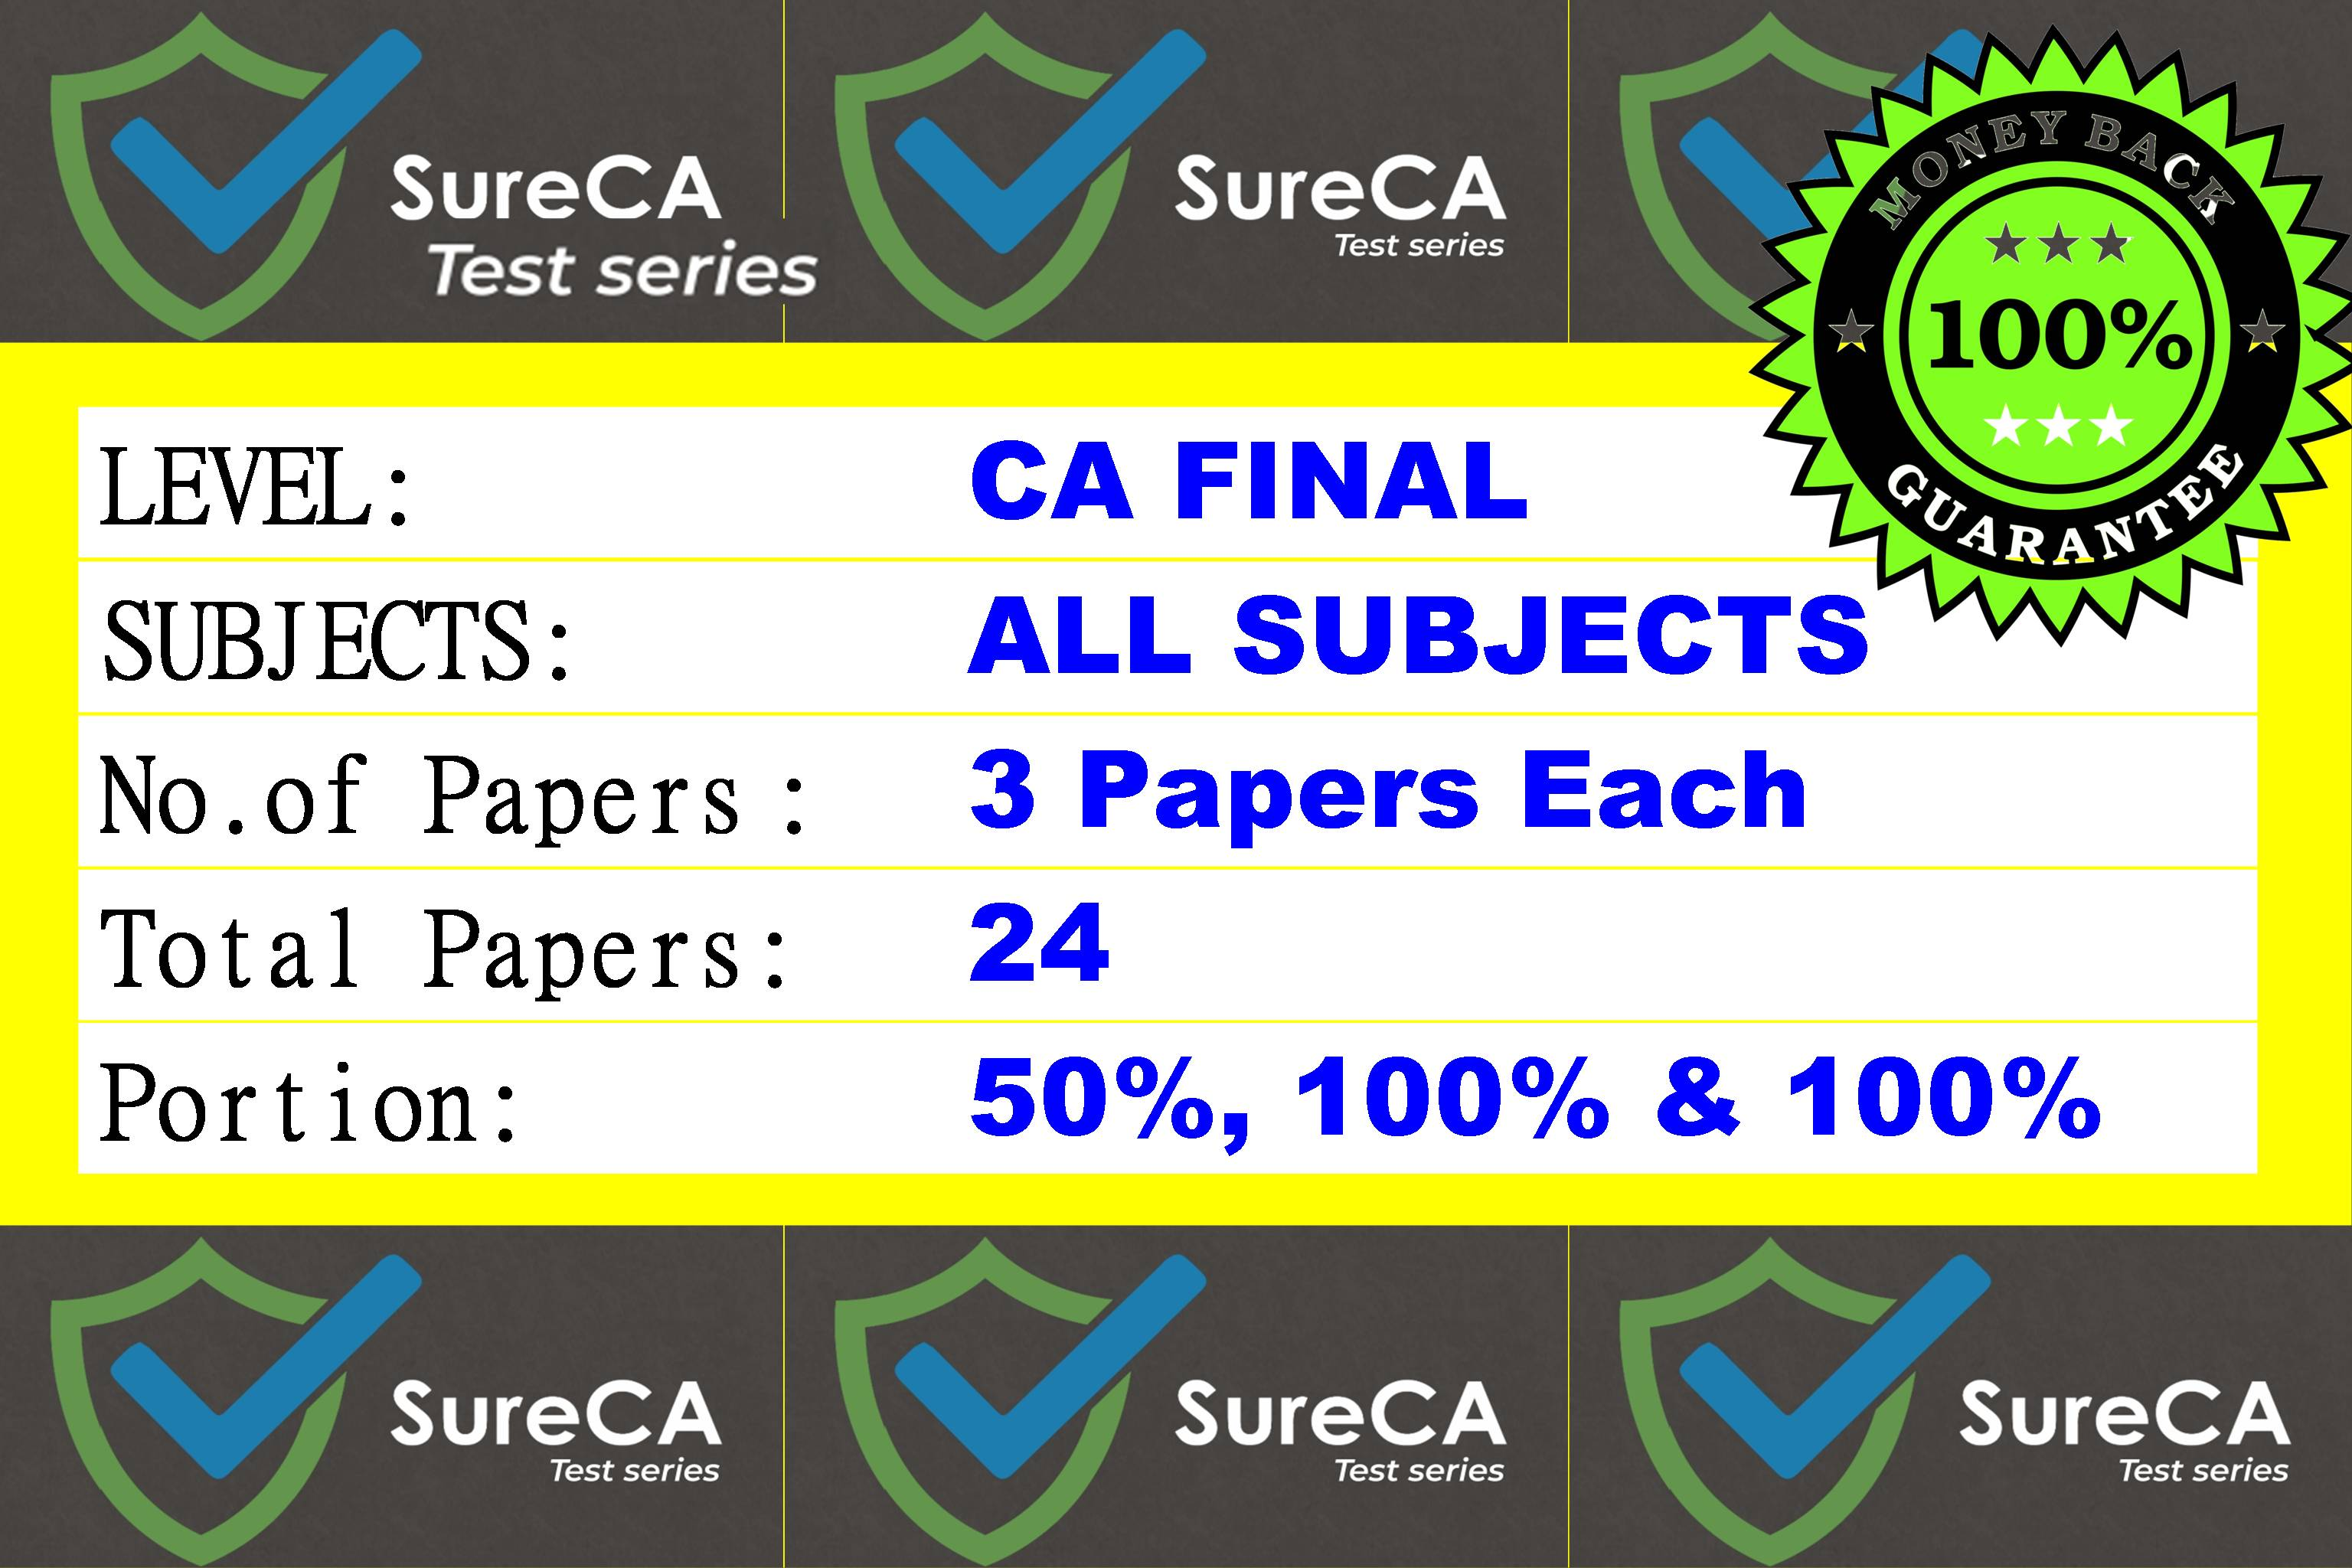 #1 –  SURE CA – CAFINAL – Test Series – 8 subjects – 24 Papers